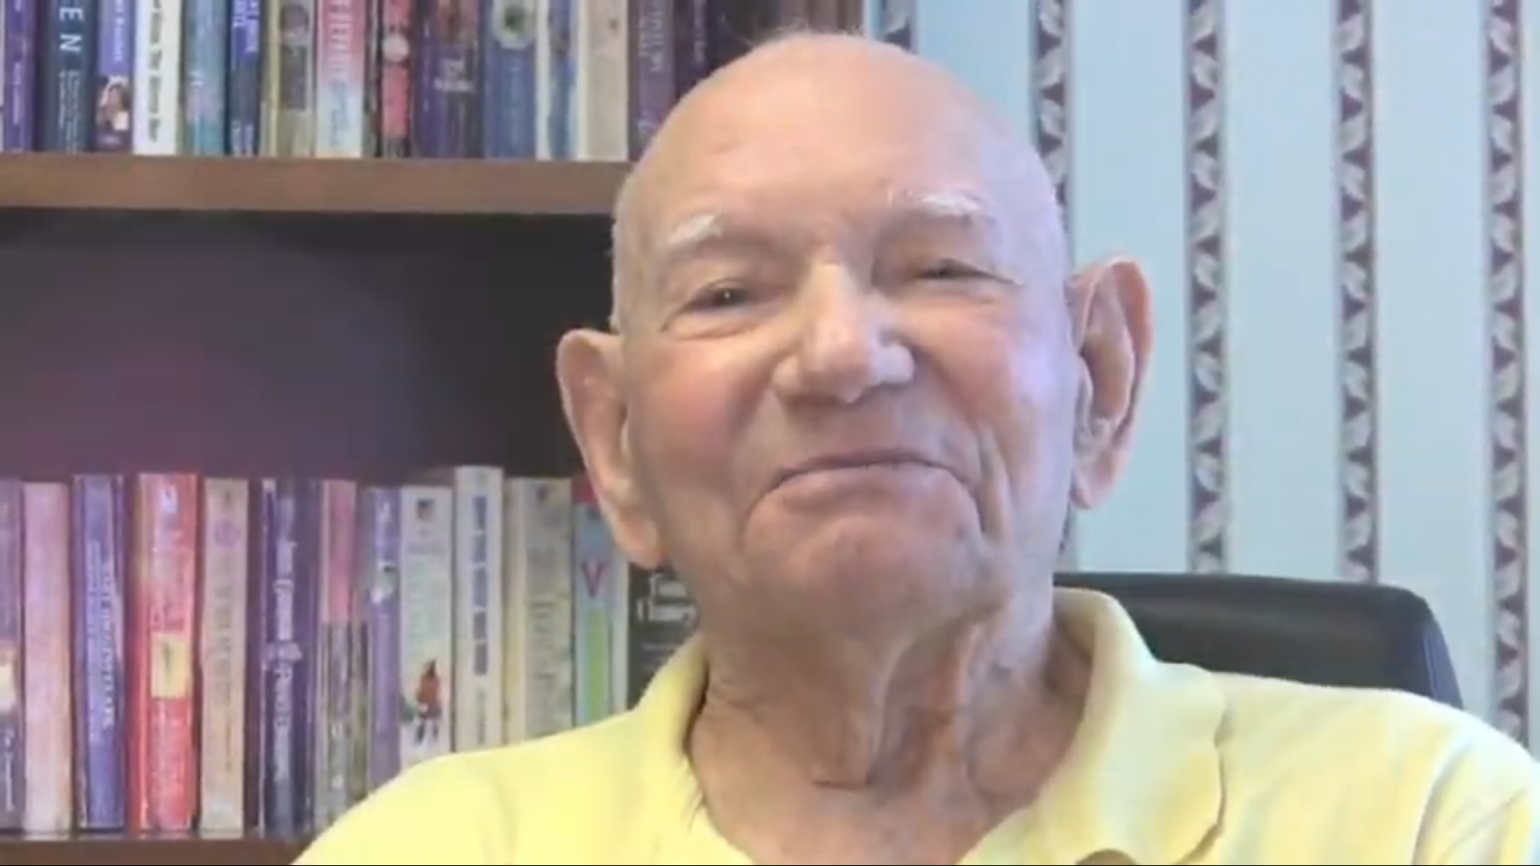 Generation Inspiration: He Learned to Read at 90-Plus